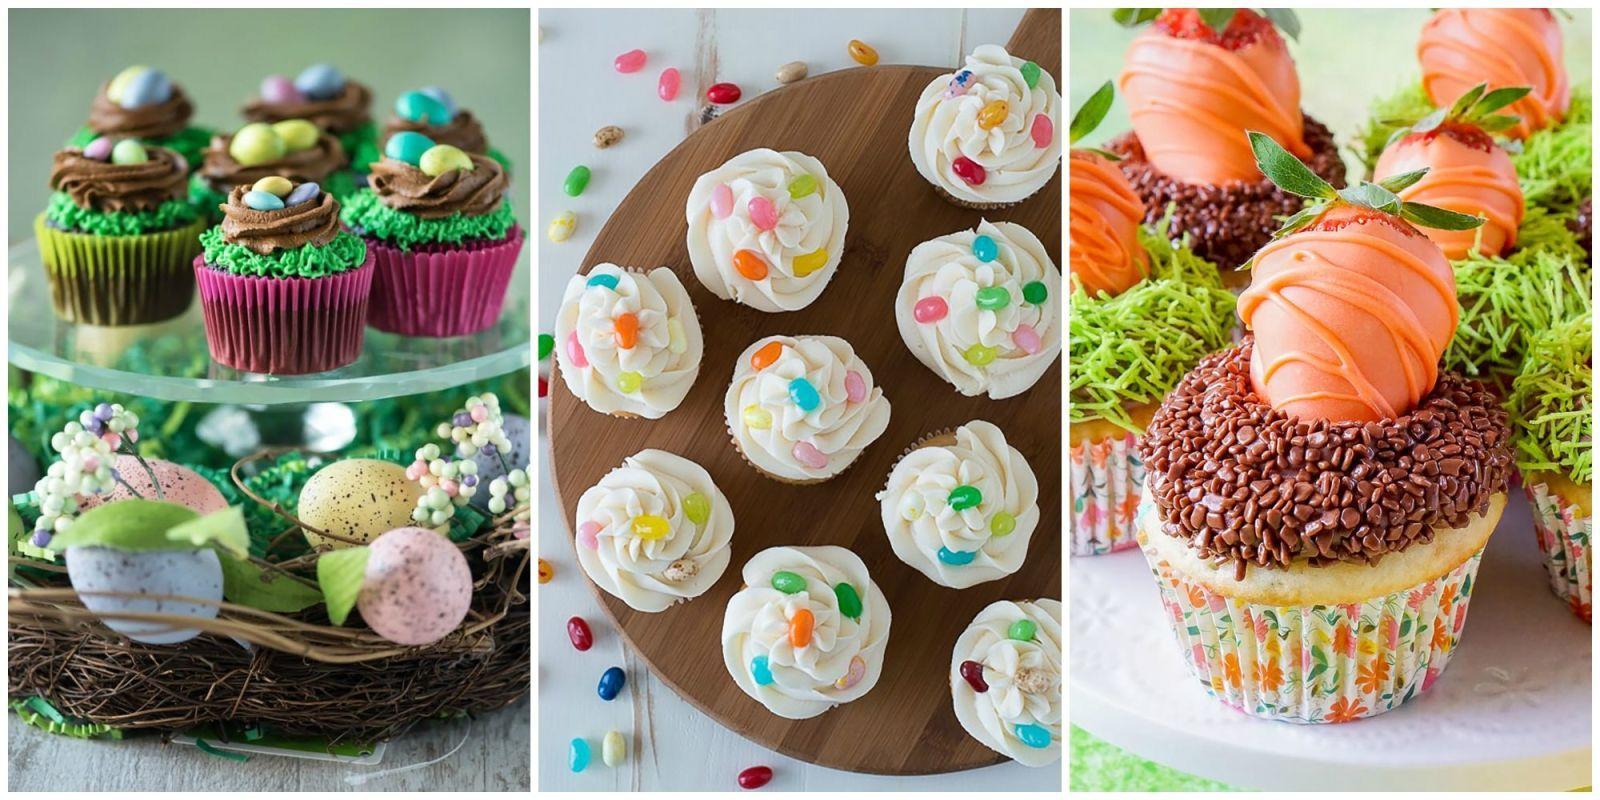 15 adorable easter cupcake decorating ideas for Cute cupcake decorating ideas for easter